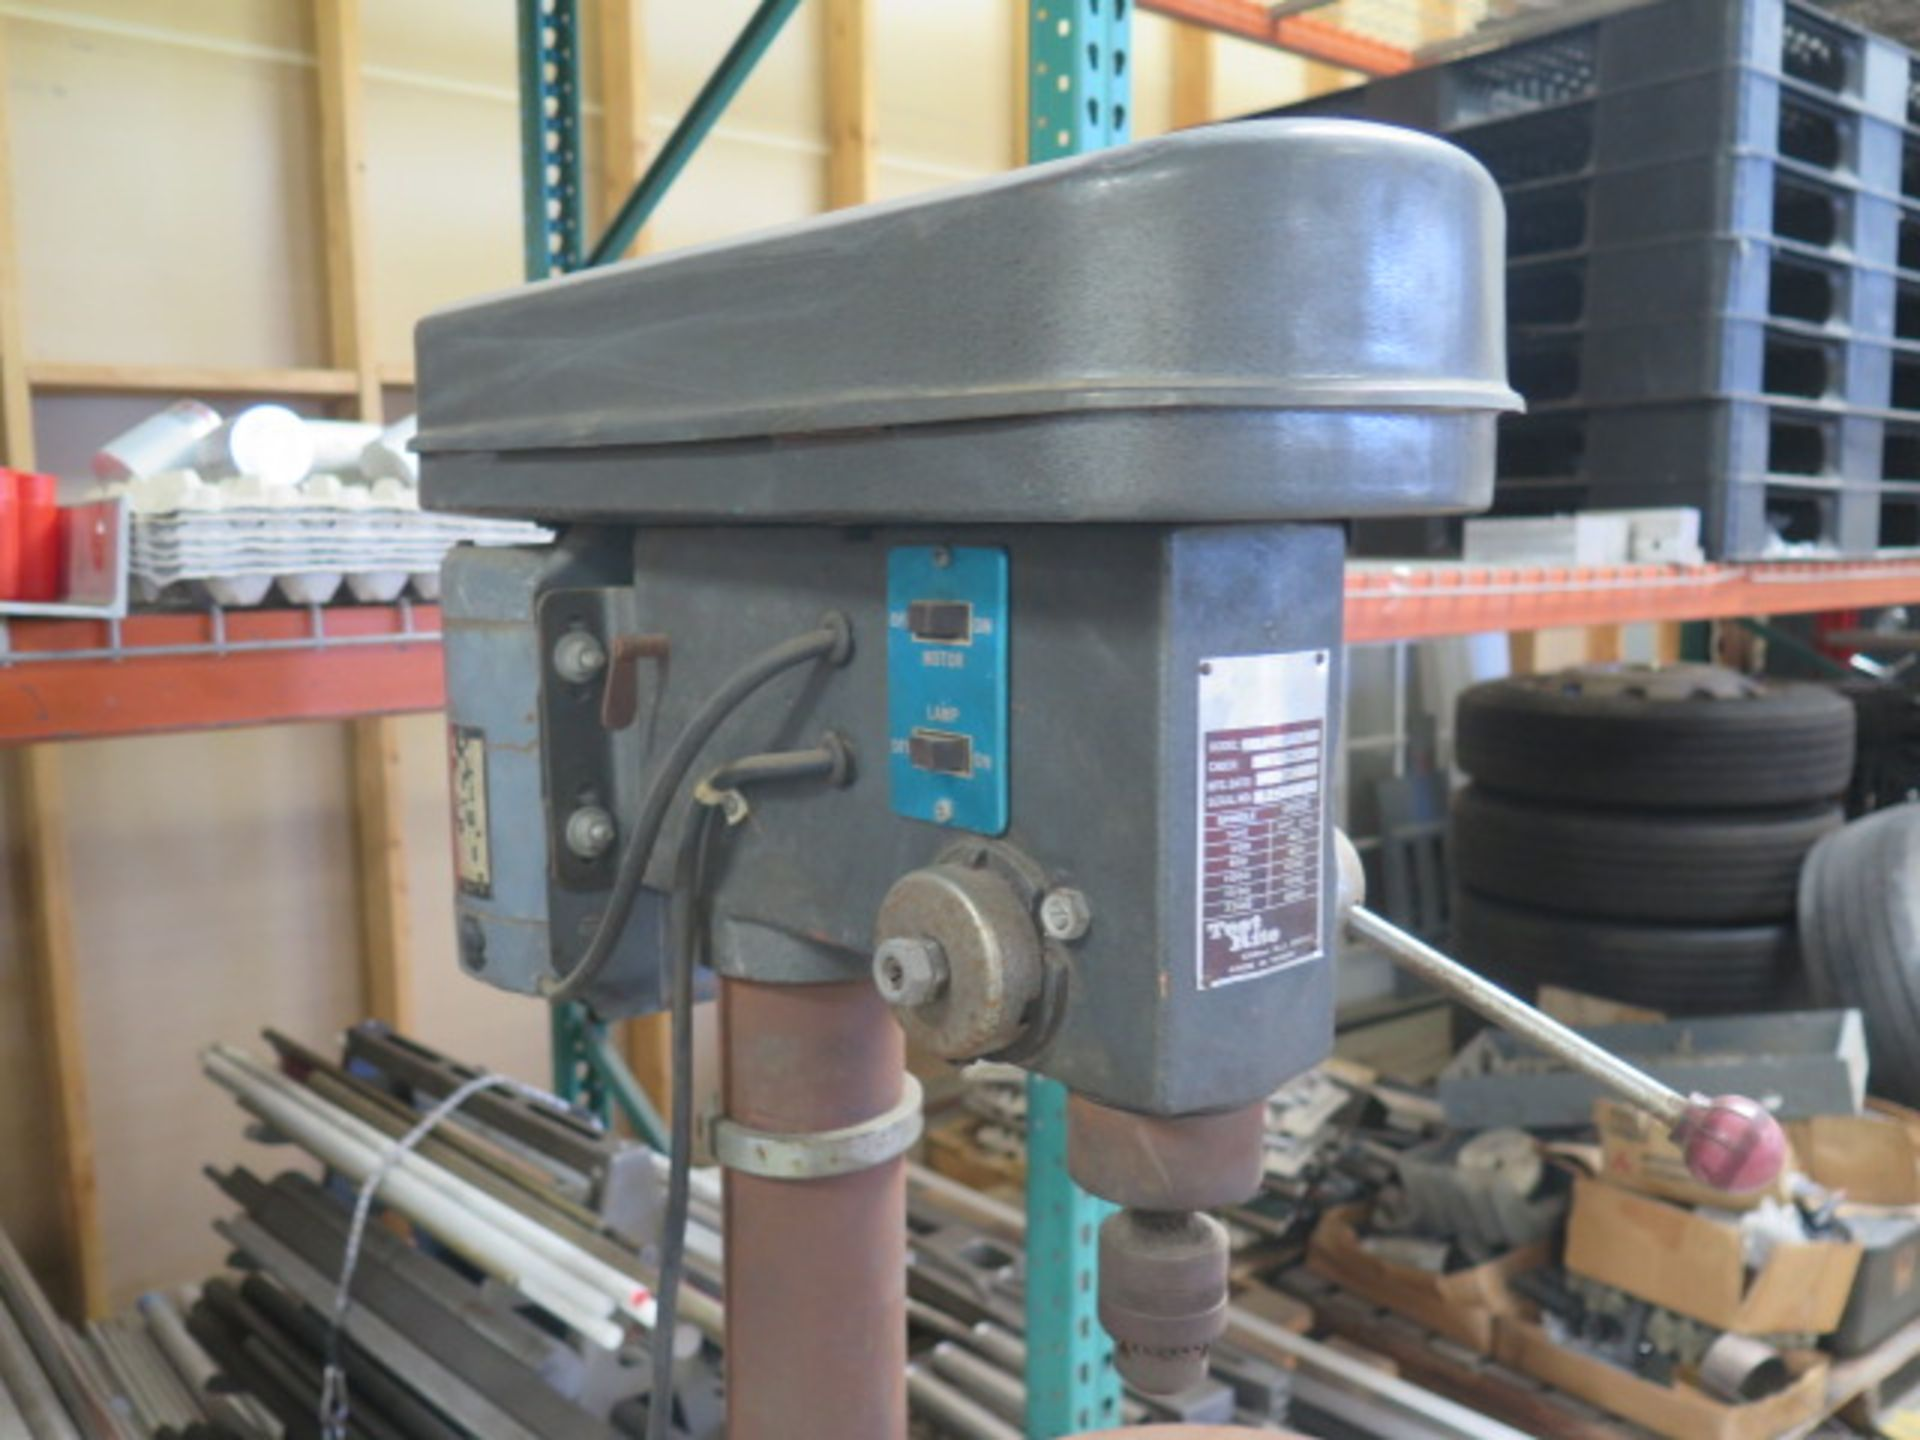 Test Rite Pedestal Drill Press (SOLD AS-IS - NO WARRANTY) - Image 3 of 6